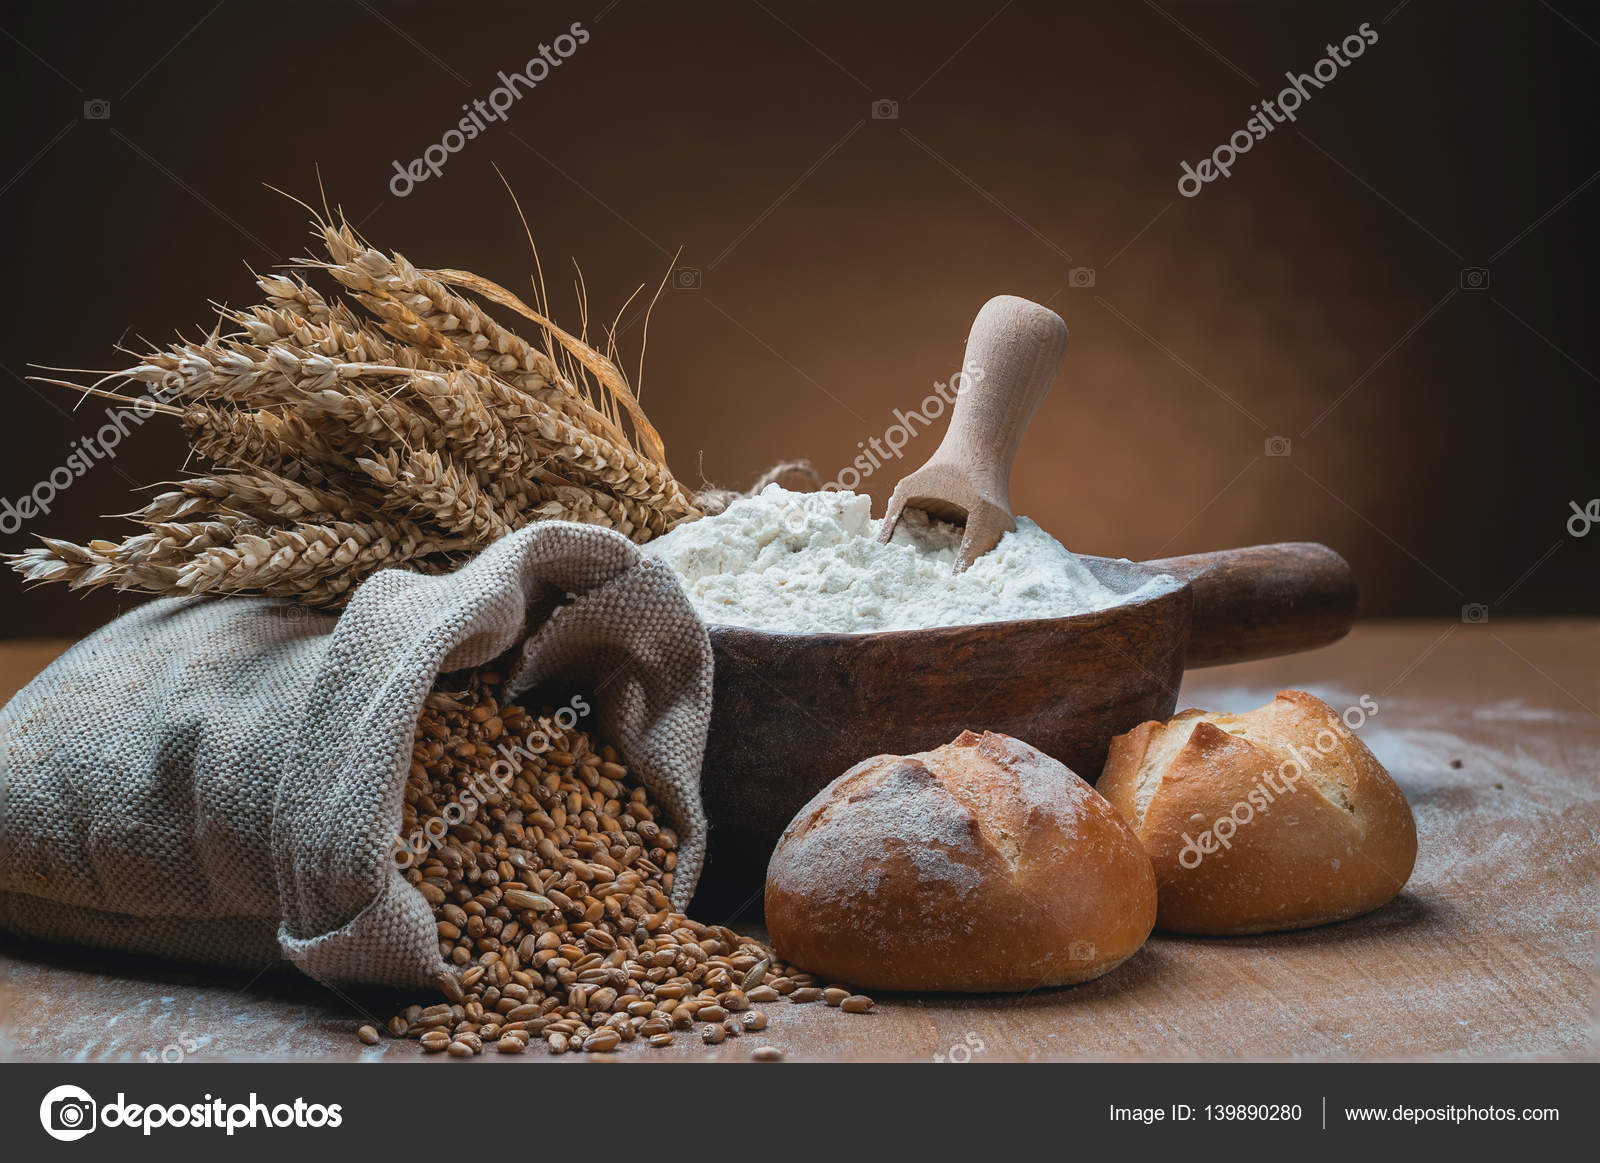 bakery products wallpaper — stock photo © fastudio #139890280